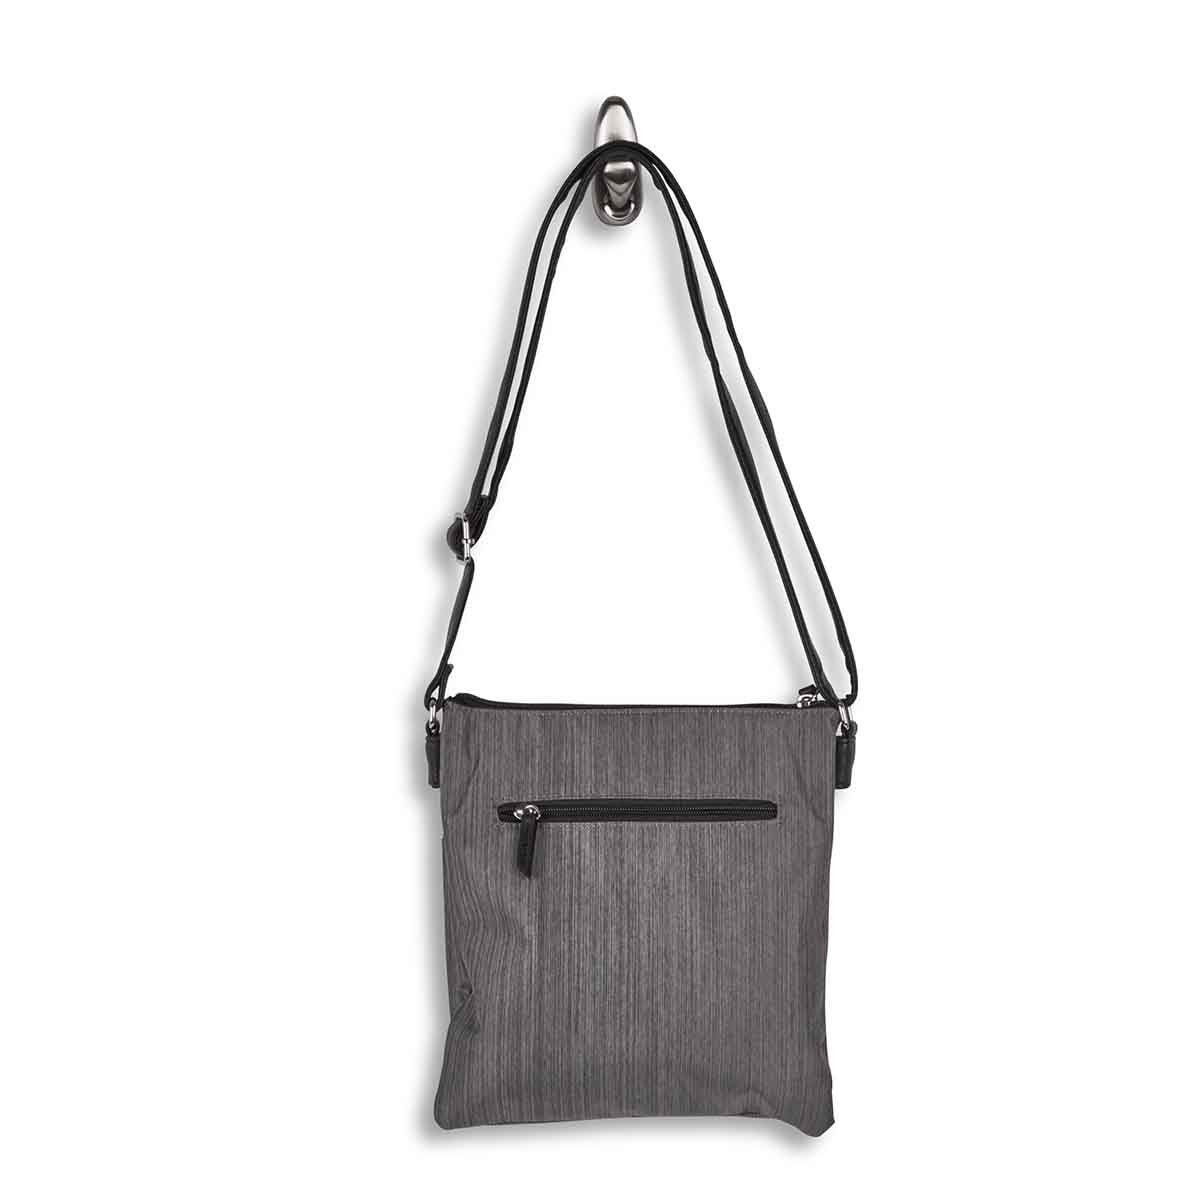 Lds gry crossdye 2 compartment crossbody